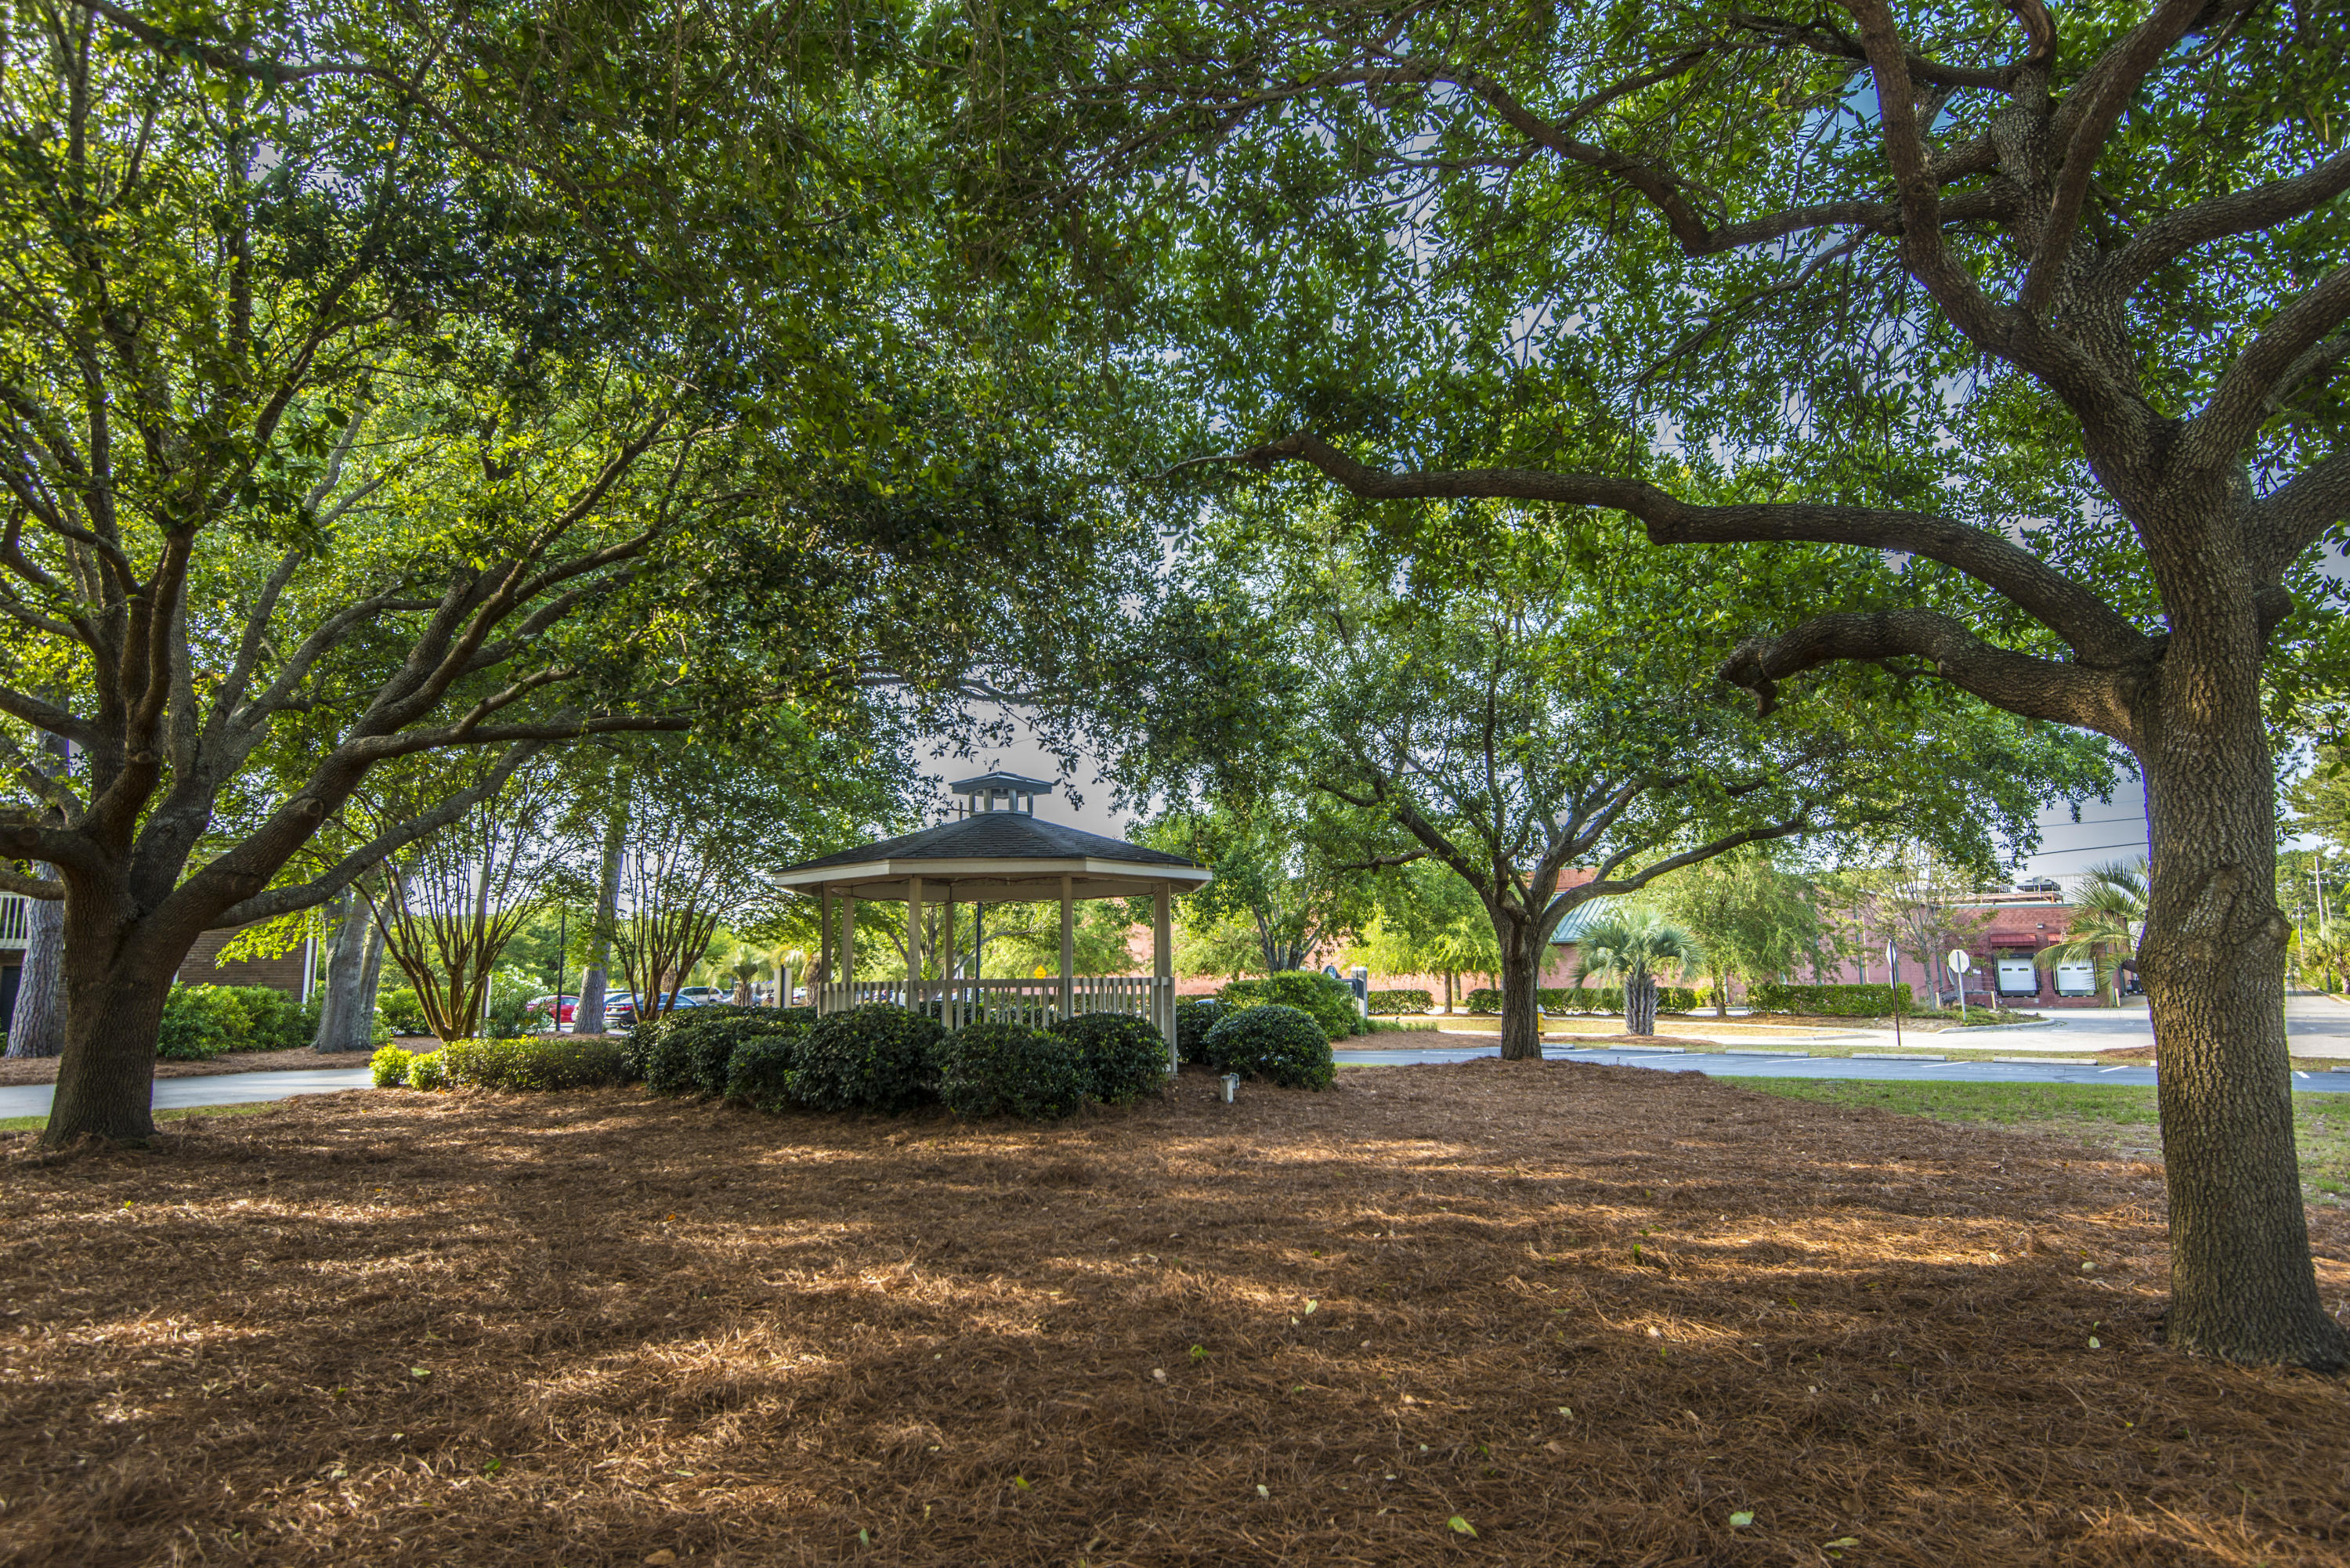 Rivers Point Row Homes For Sale - 21 Rivers Point Row, Charleston, SC - 16